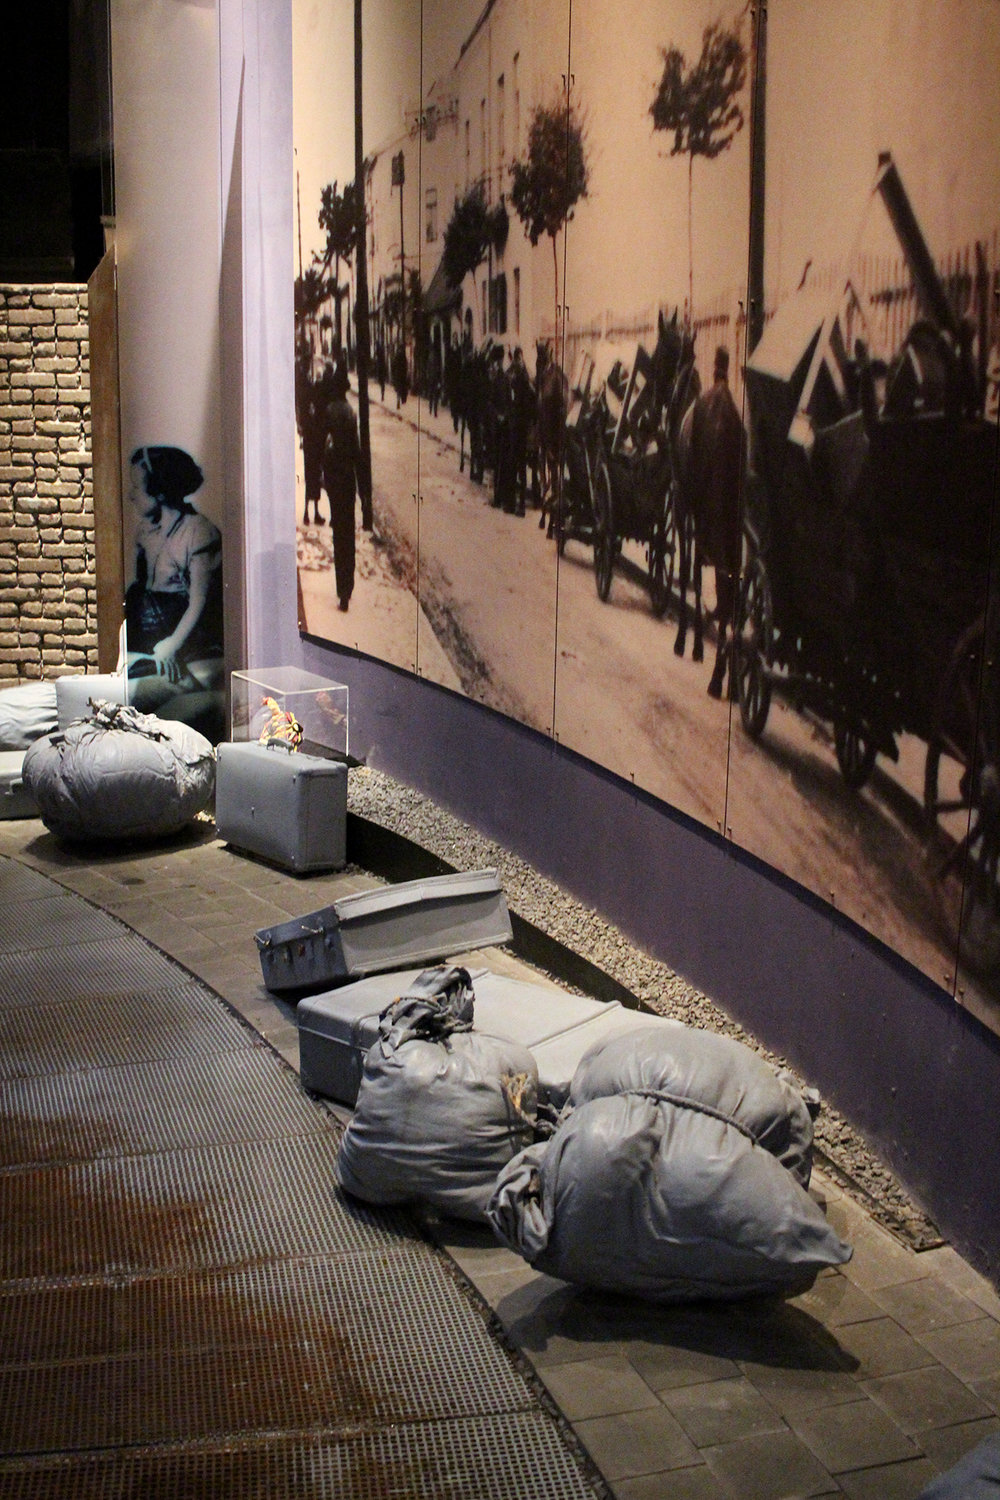 A walk-through interractive display in Ghetto Fighters' House, the first Holocaust museum, Israel. Photography by Geena Matuson @geenamatuson #thegirlmirage.